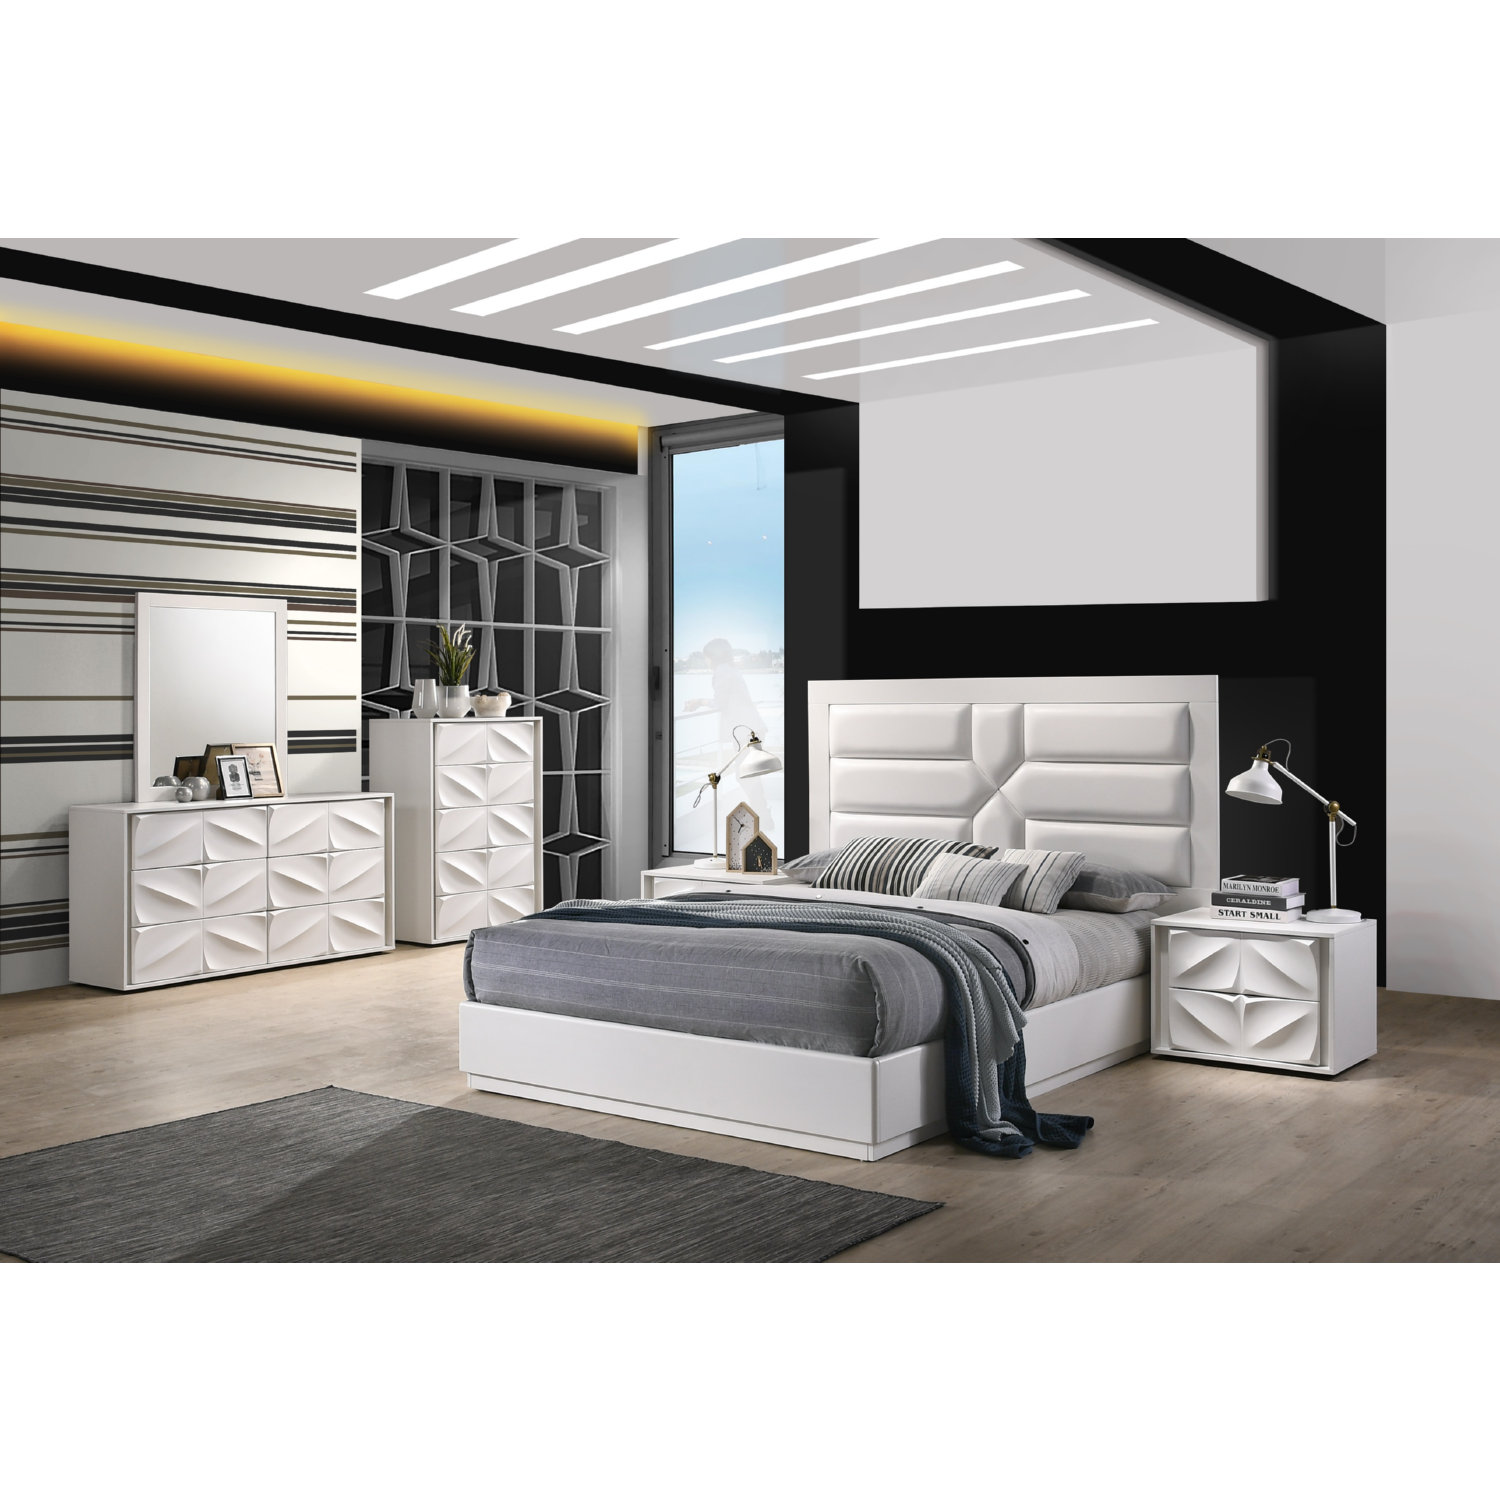 Chintaly Amsterdam King 4pc Amsterdam 4 Piece King Bedroom Set In Matte White